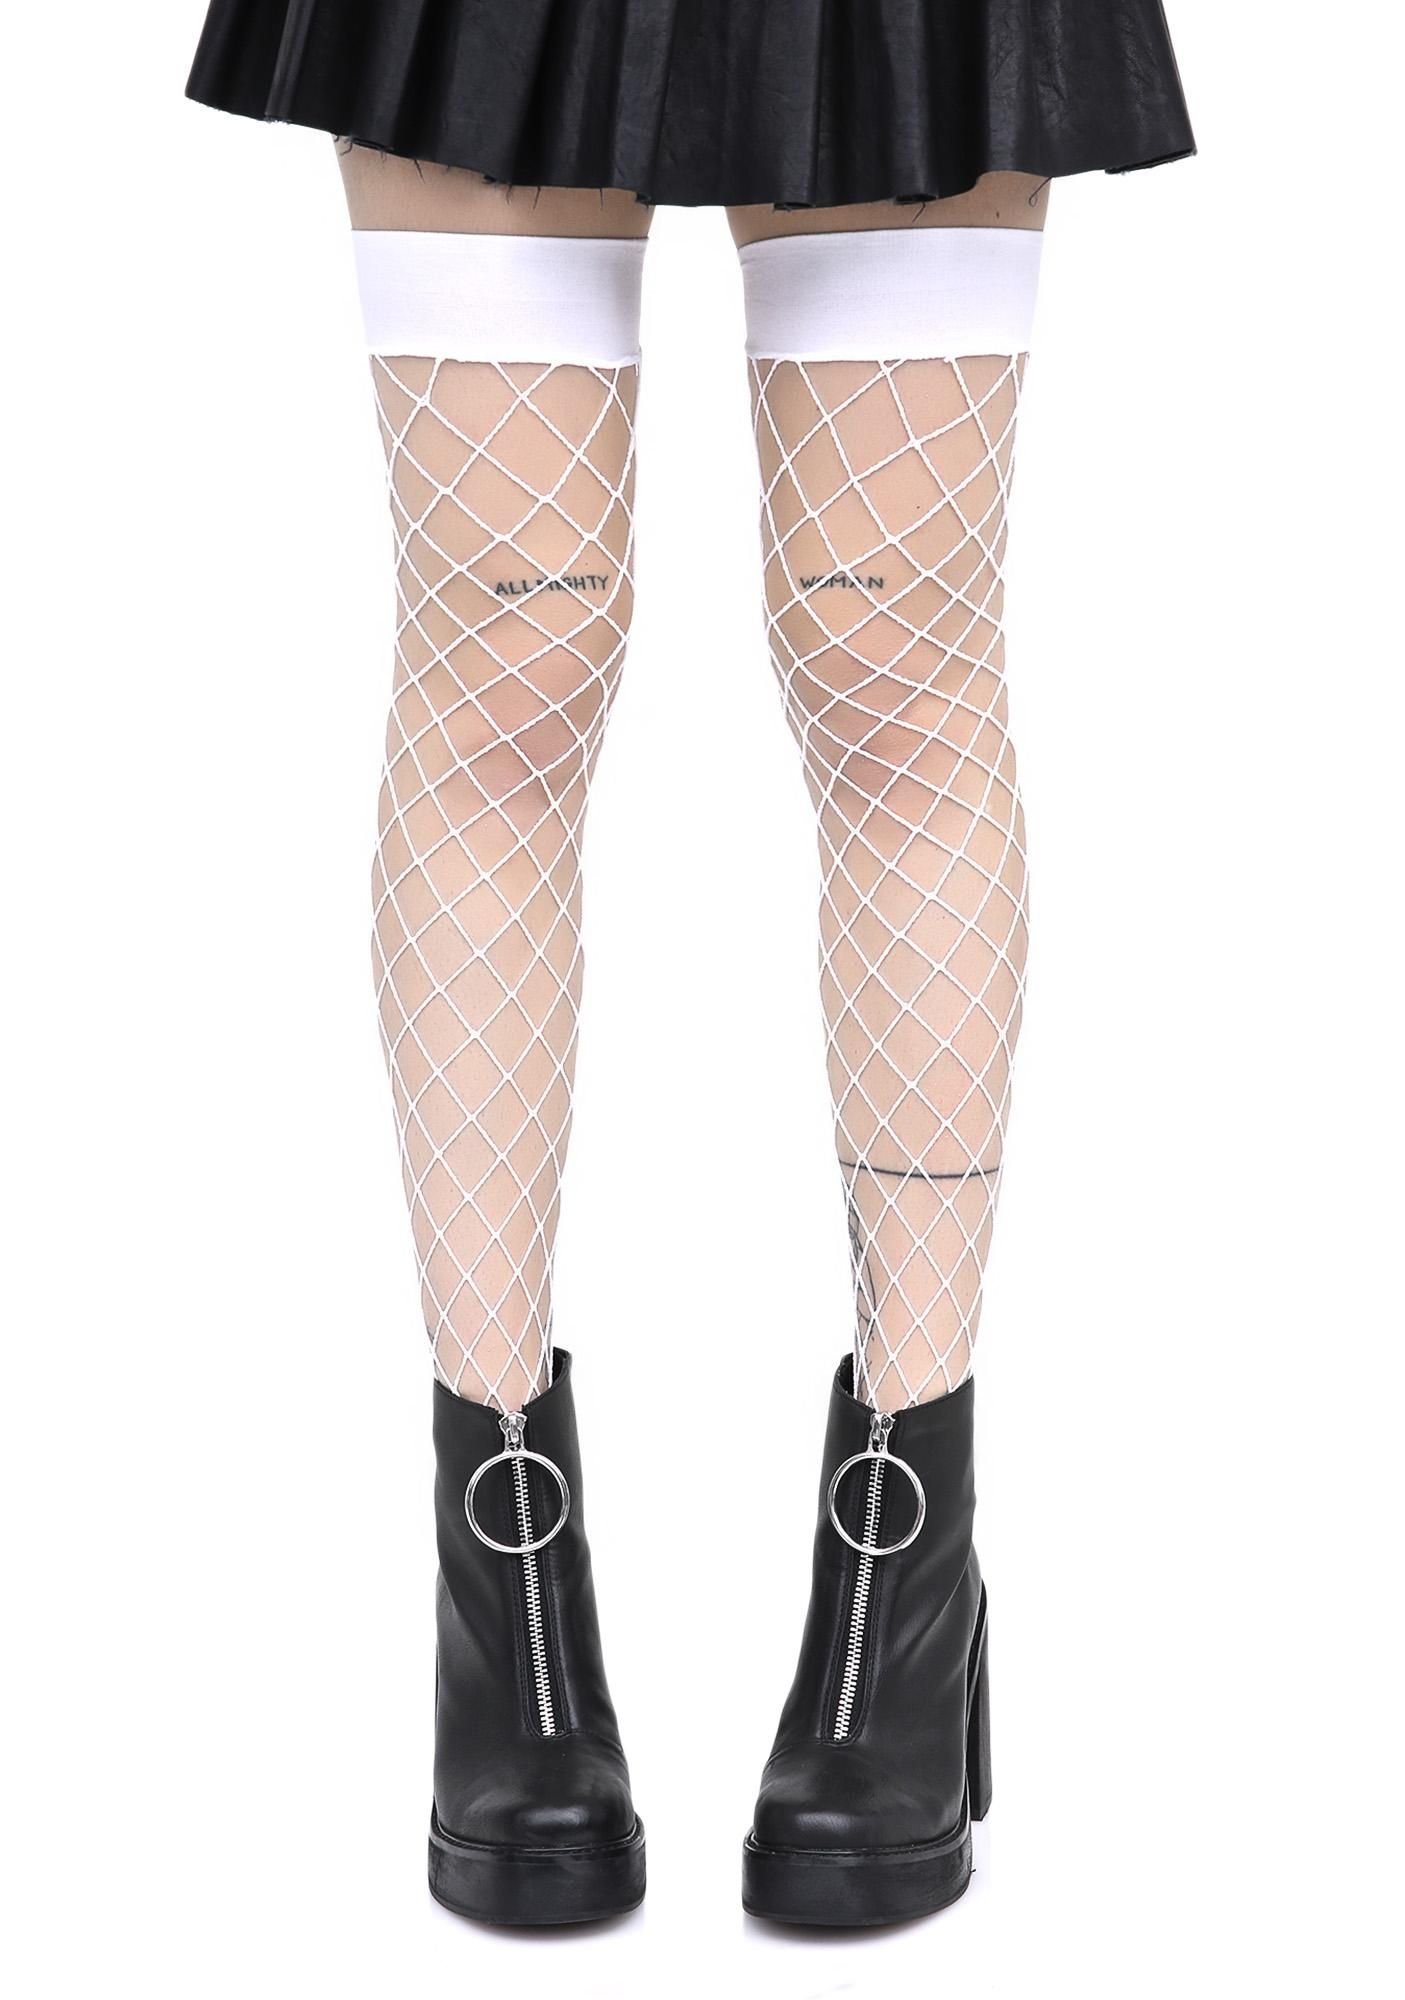 0f252240e47f8 Worship Me White Fence Net Thigh Highs long live the Queen, bb! They'll be  kneelin' at yer feet when you rock these sikk N' sexxxy thigh high  stockings ...